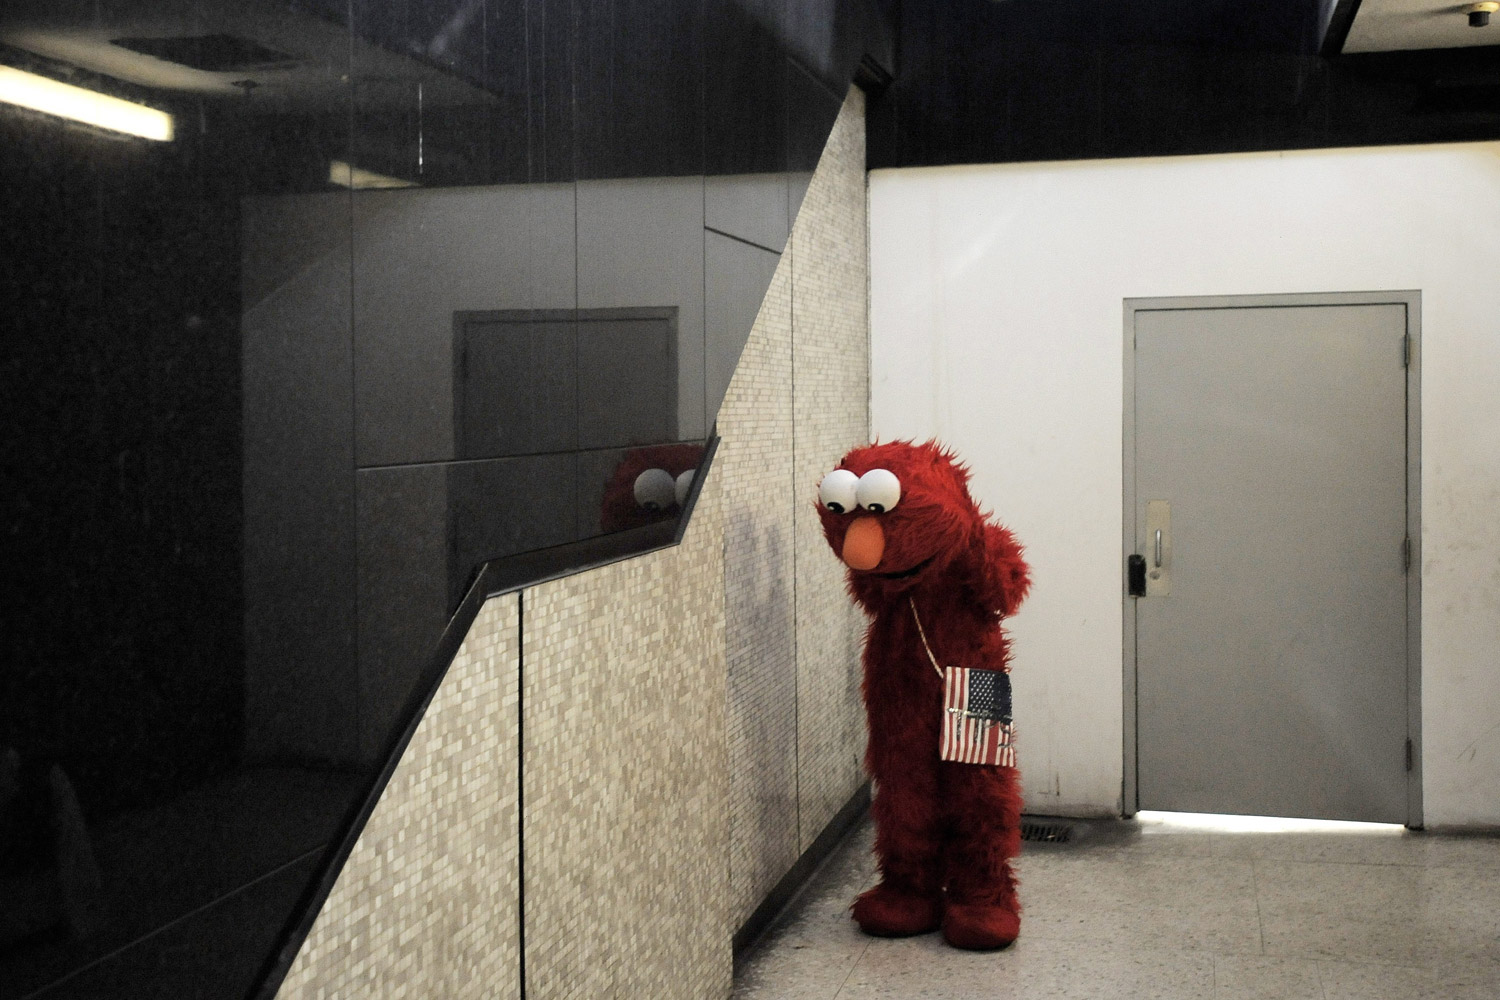 November 18, 2011. A man gets dressed in an Elmo suit to have tourists take his picture near a subway exit in New York.